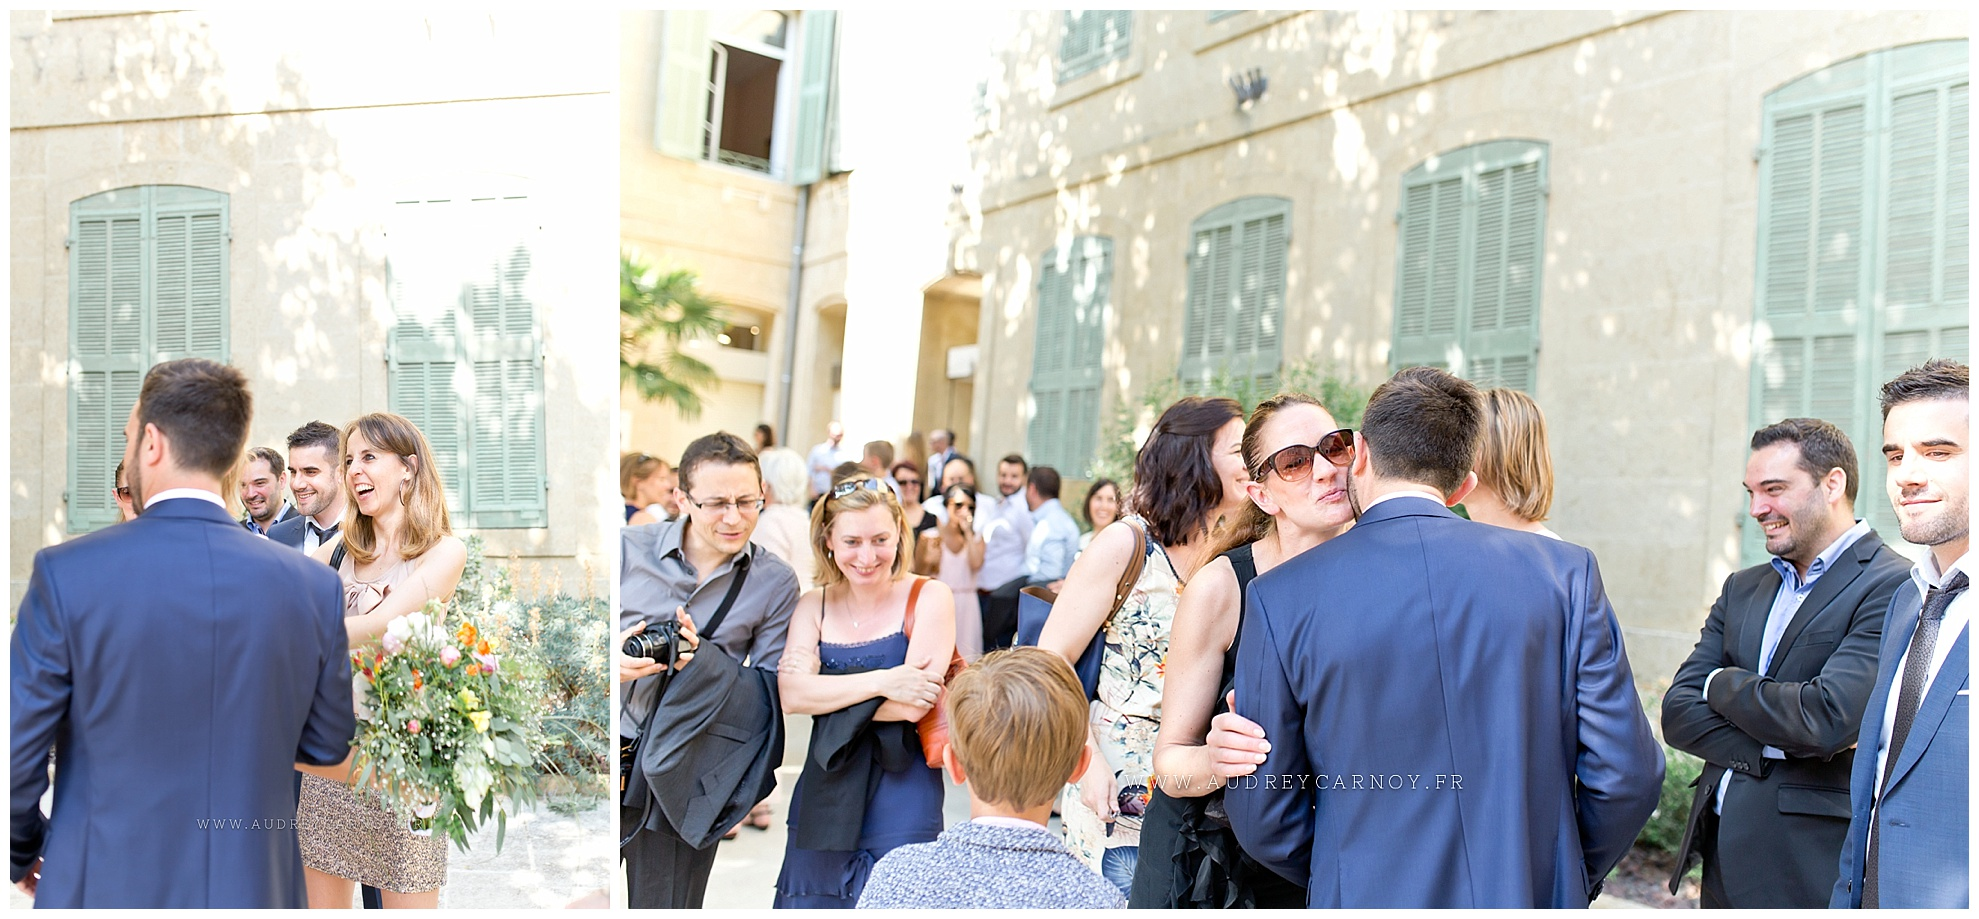 Mariage Pertuis | Laurence & Anthony 21